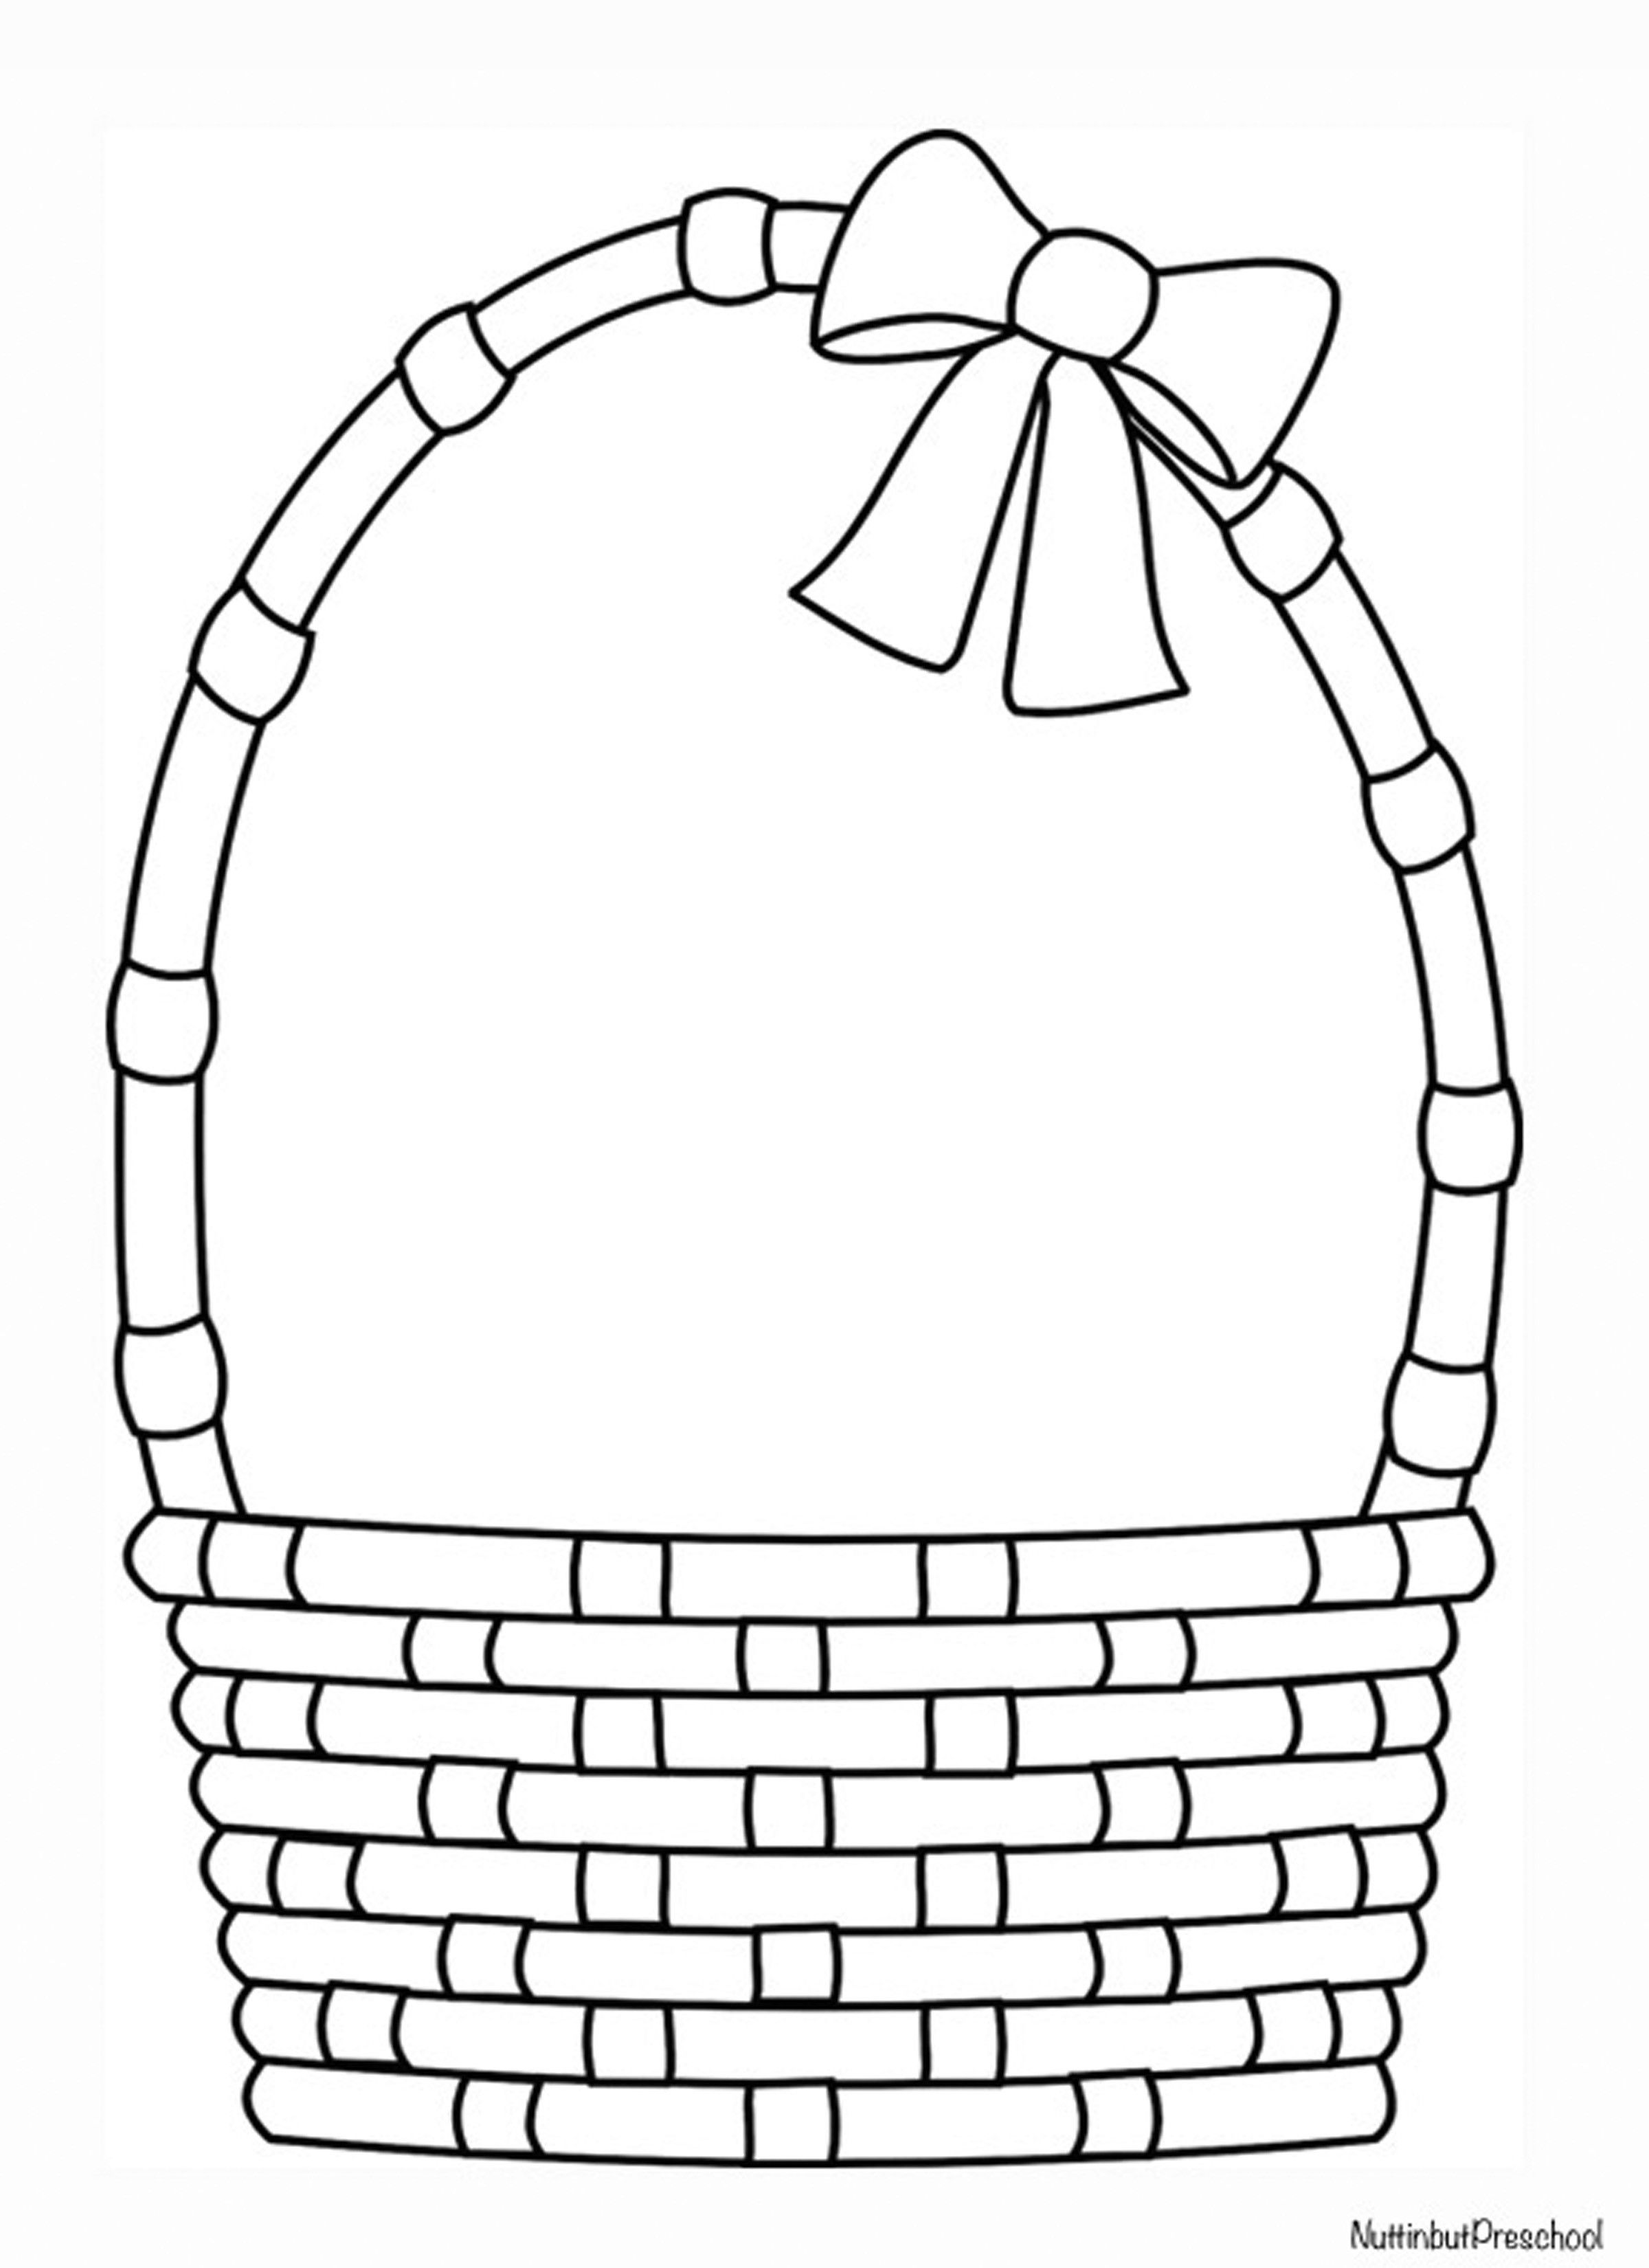 Easter Basket Coloring Sheet Or Art Pattern Easter Basket